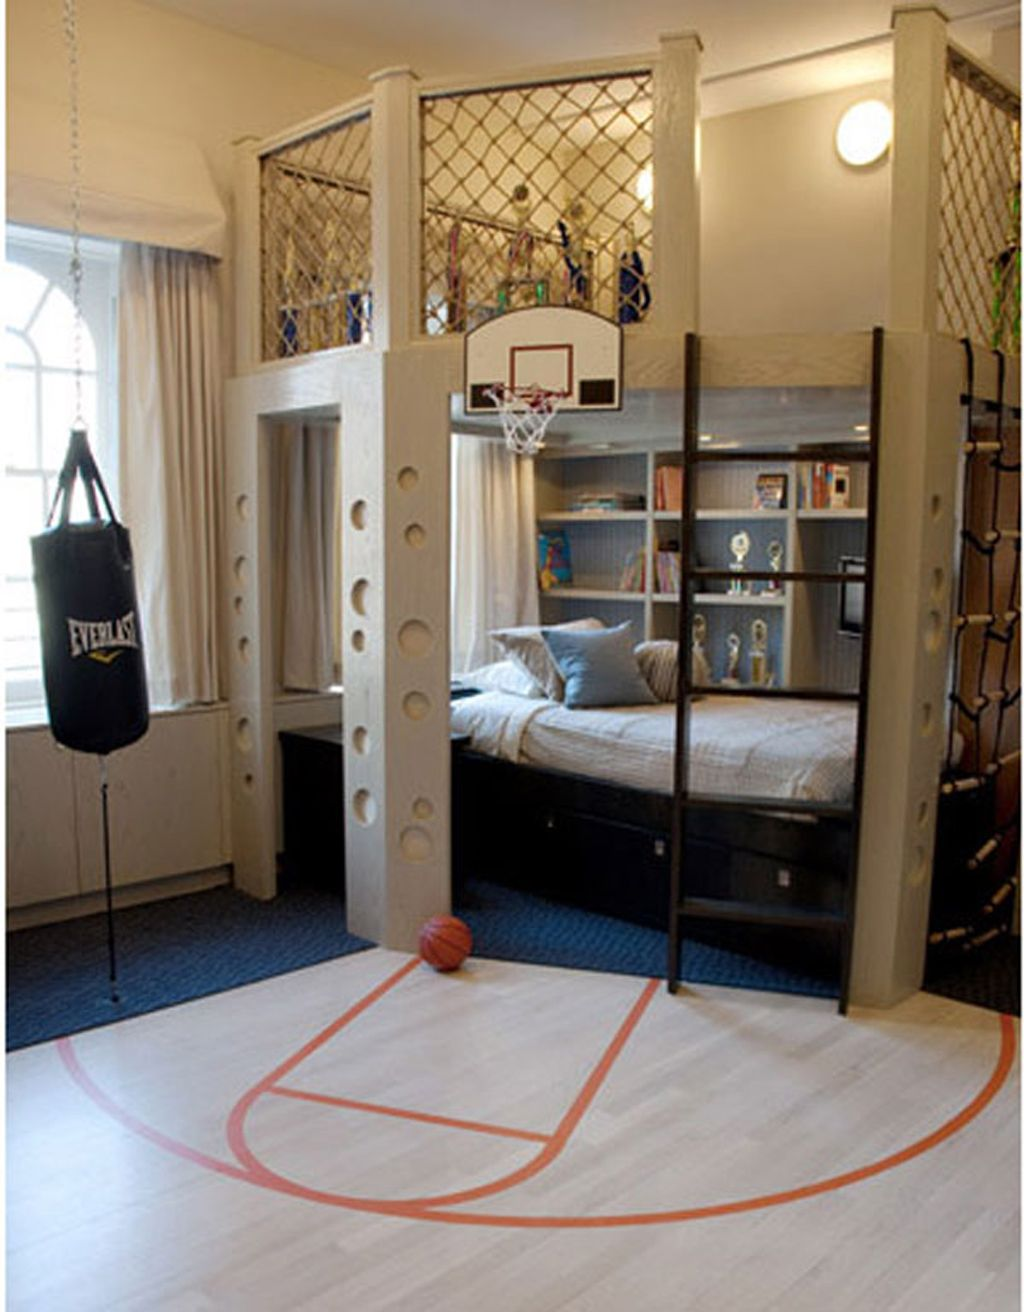 Merveilleux Bedroom: Unique Bedroom Theme For Cool Boys Rooms Inspiration, Cool Boys  Bedroom Ideas With Everlast Punching Bag Stand And Basketball Hoop